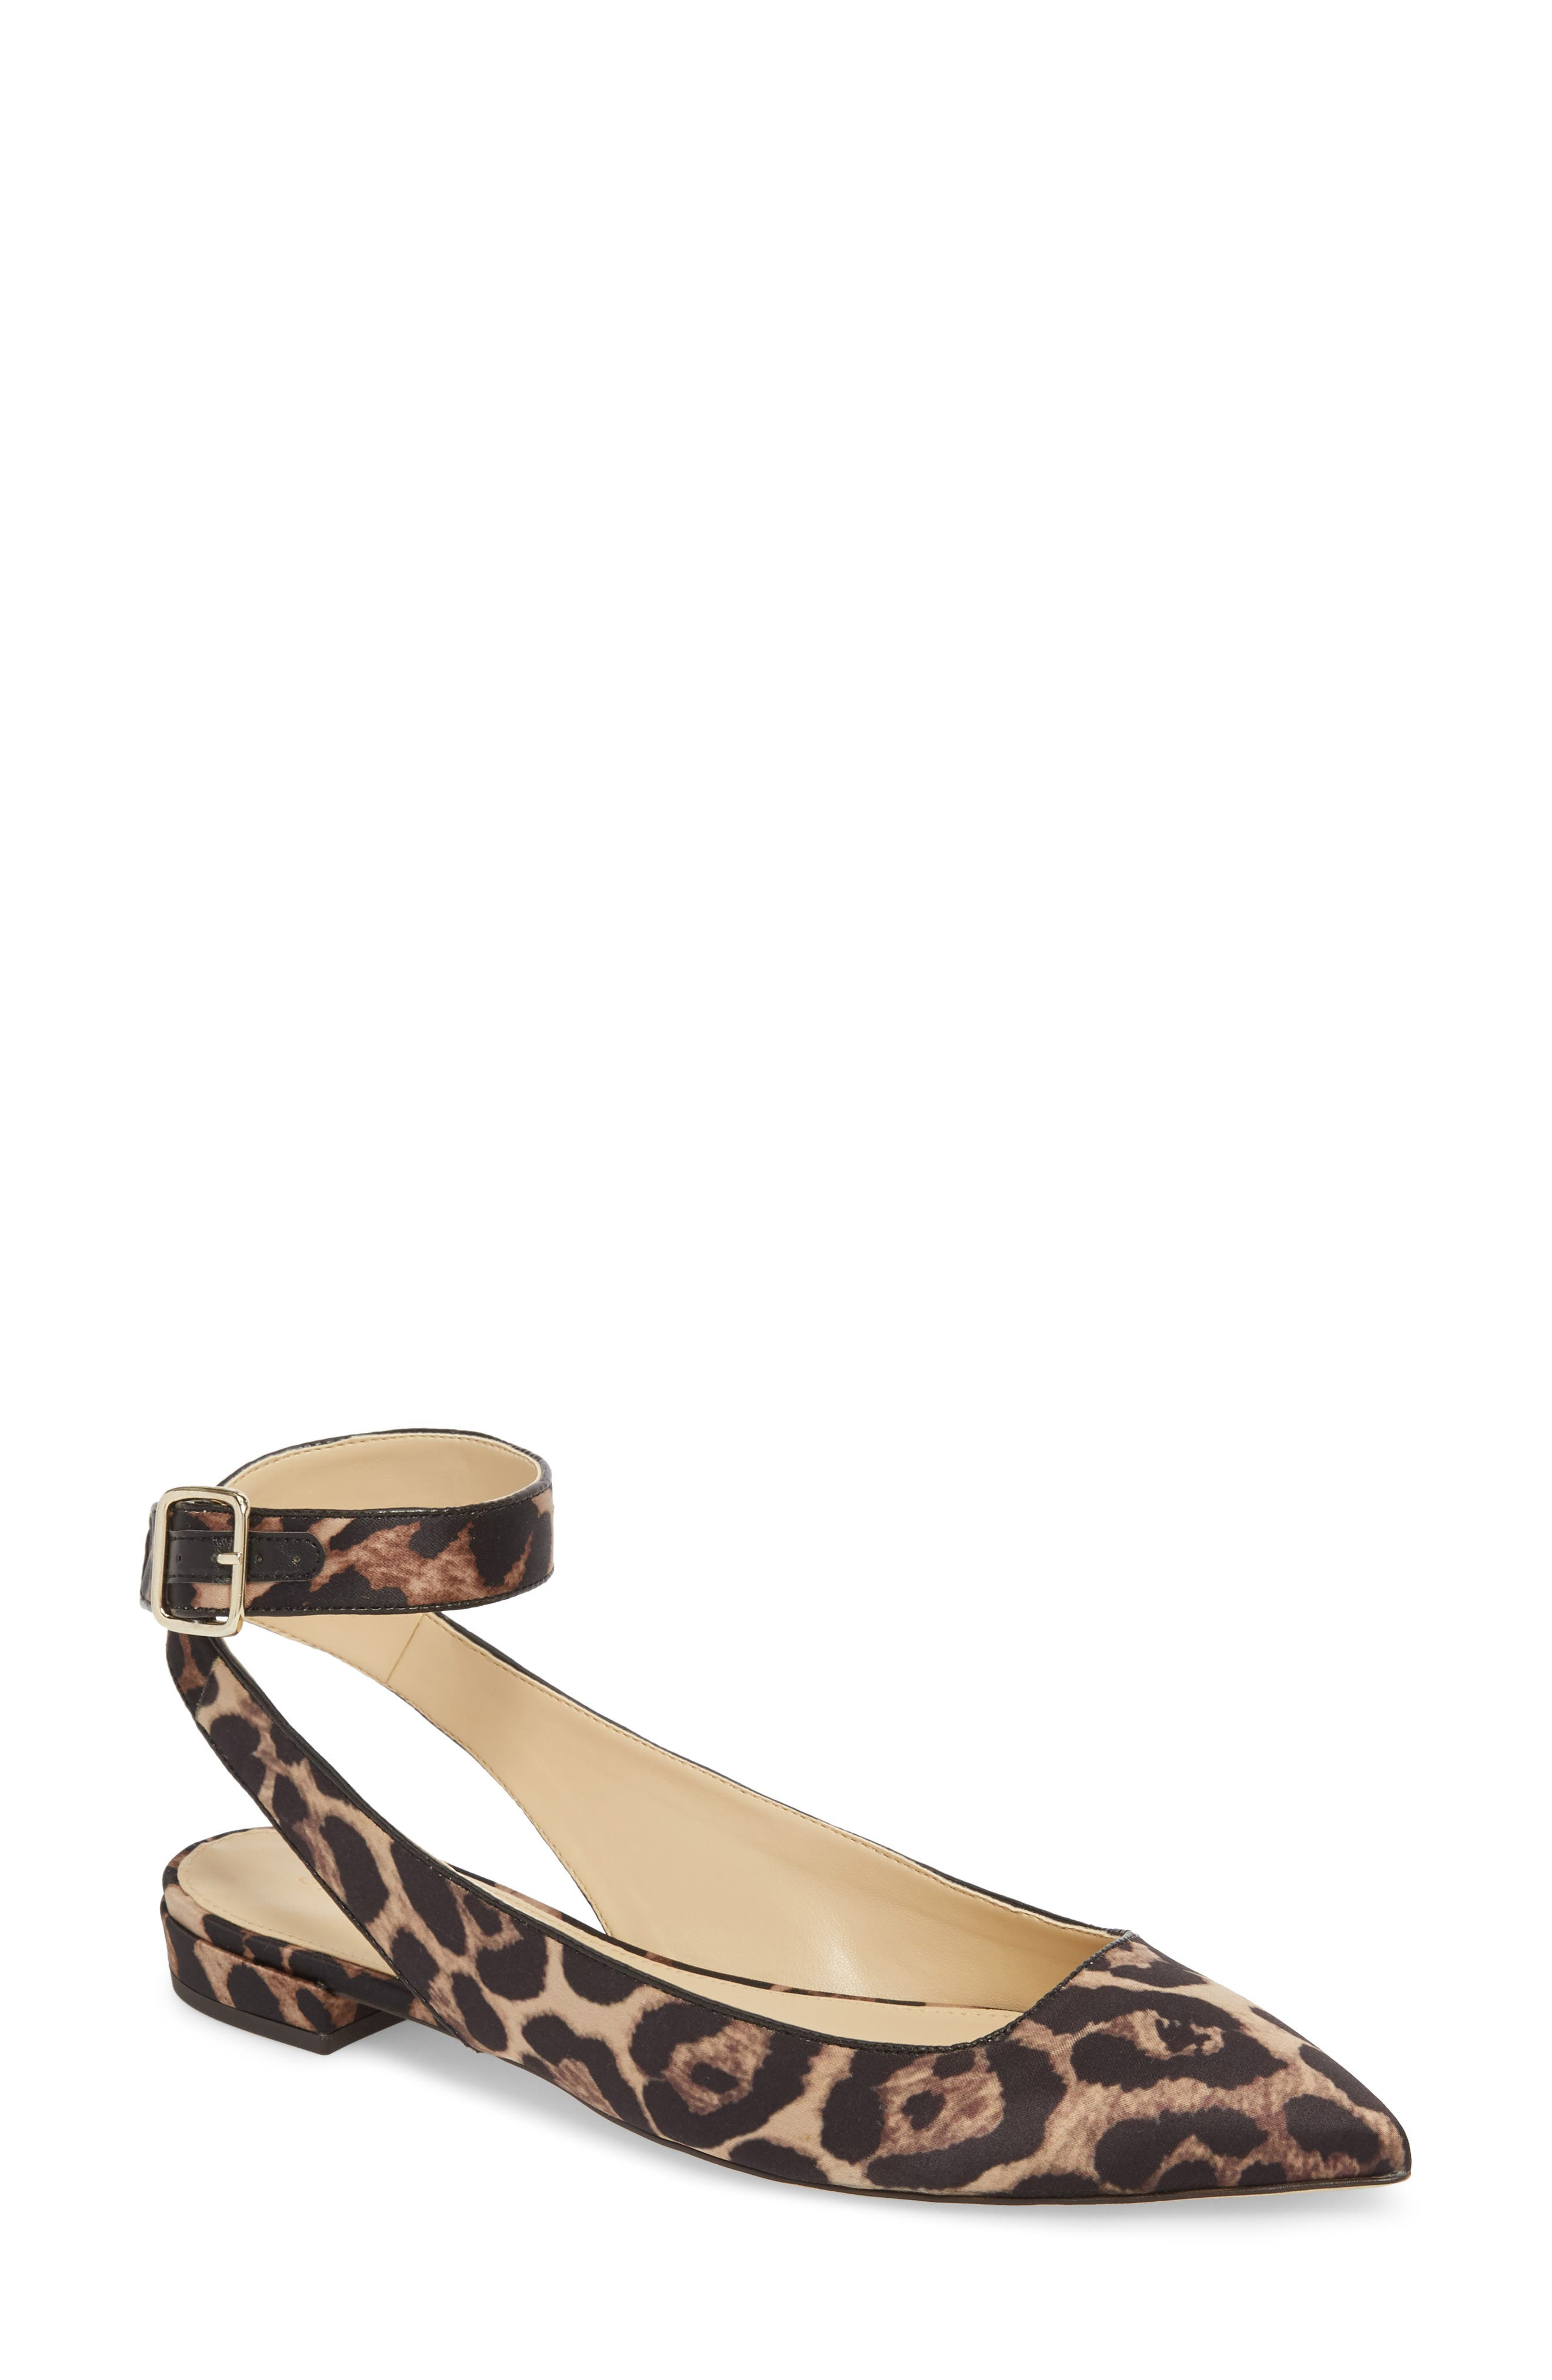 J. Crew Harlech Tabby Print Ankle Strap Flat,                         Main,                         color,